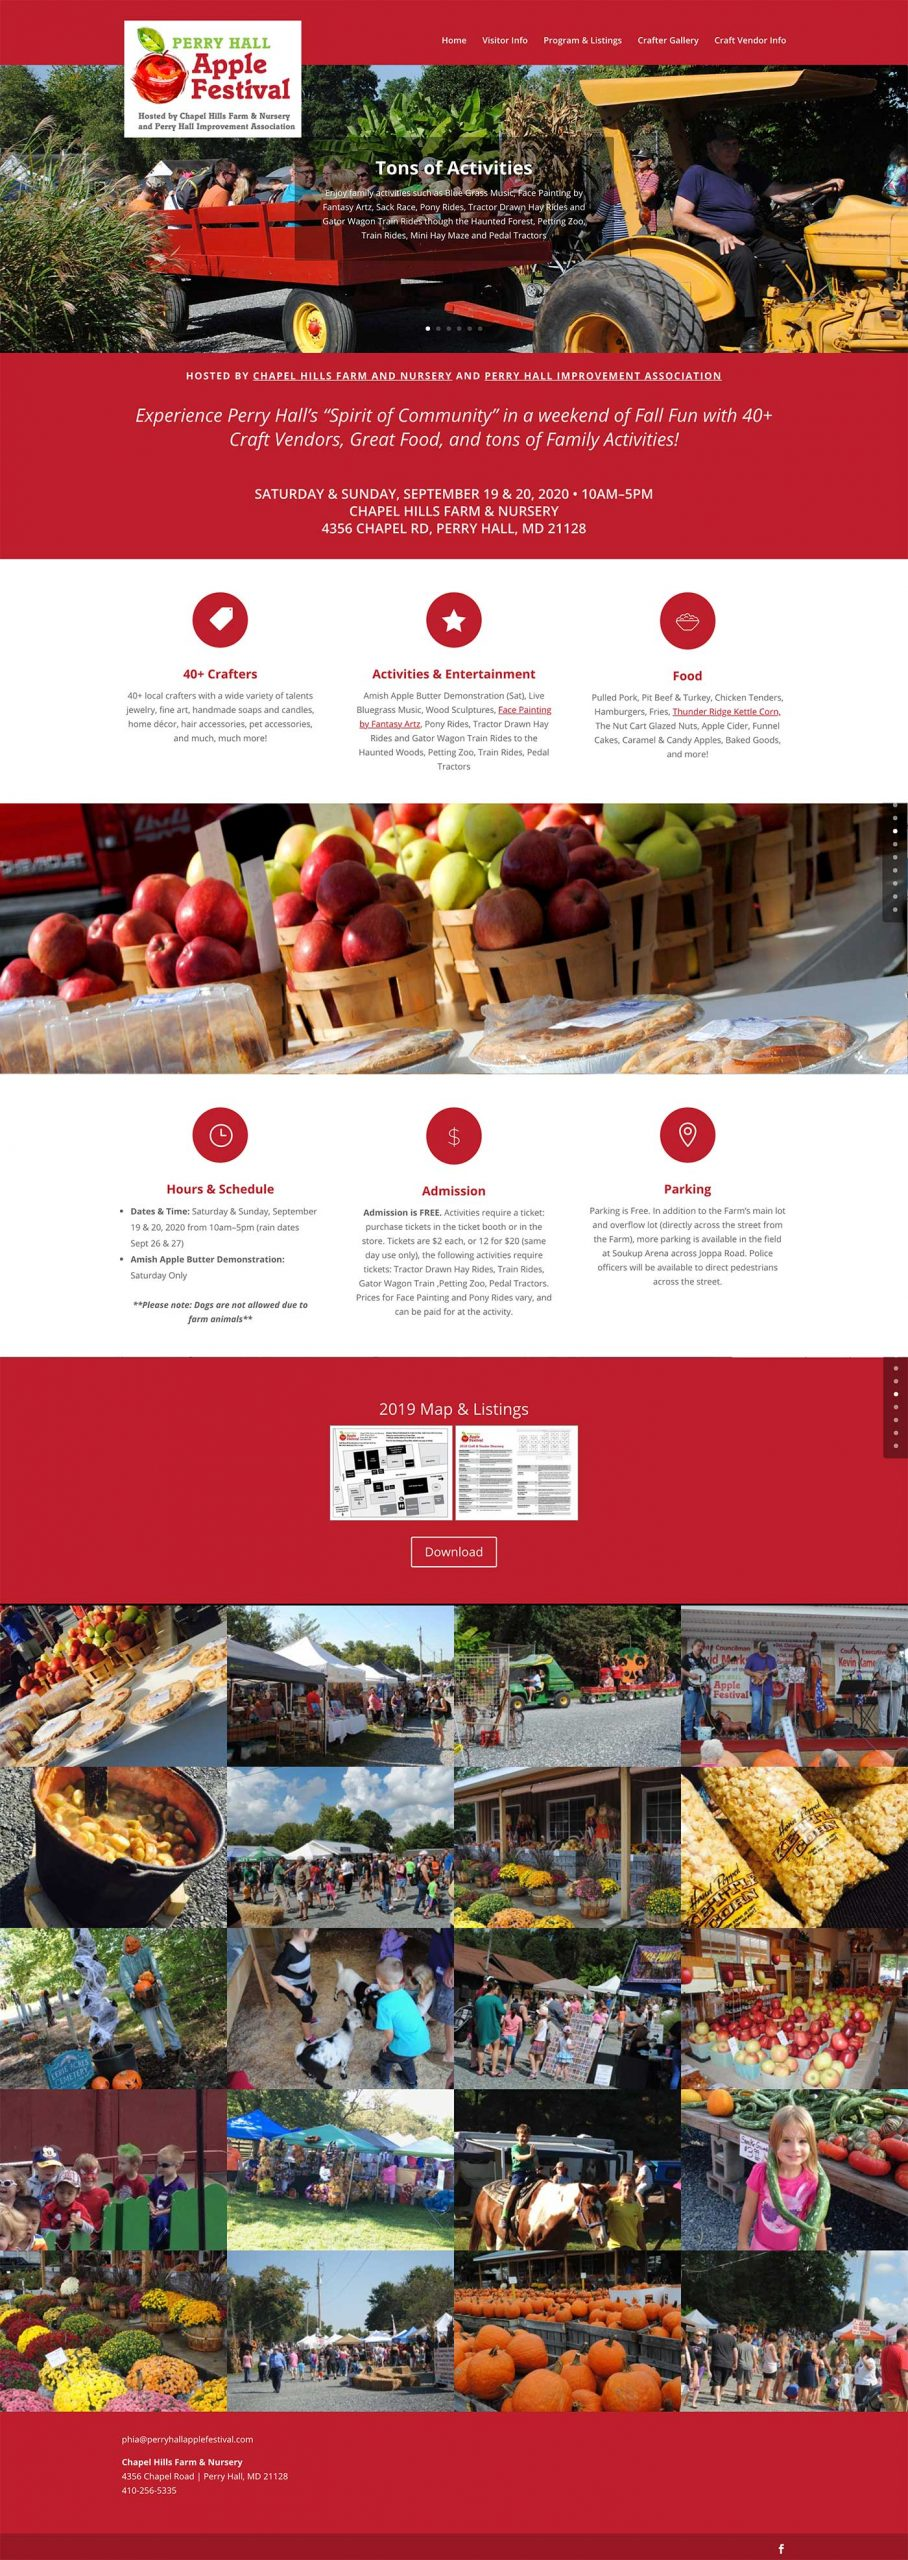 Website design for Perry Hall Apple Festival